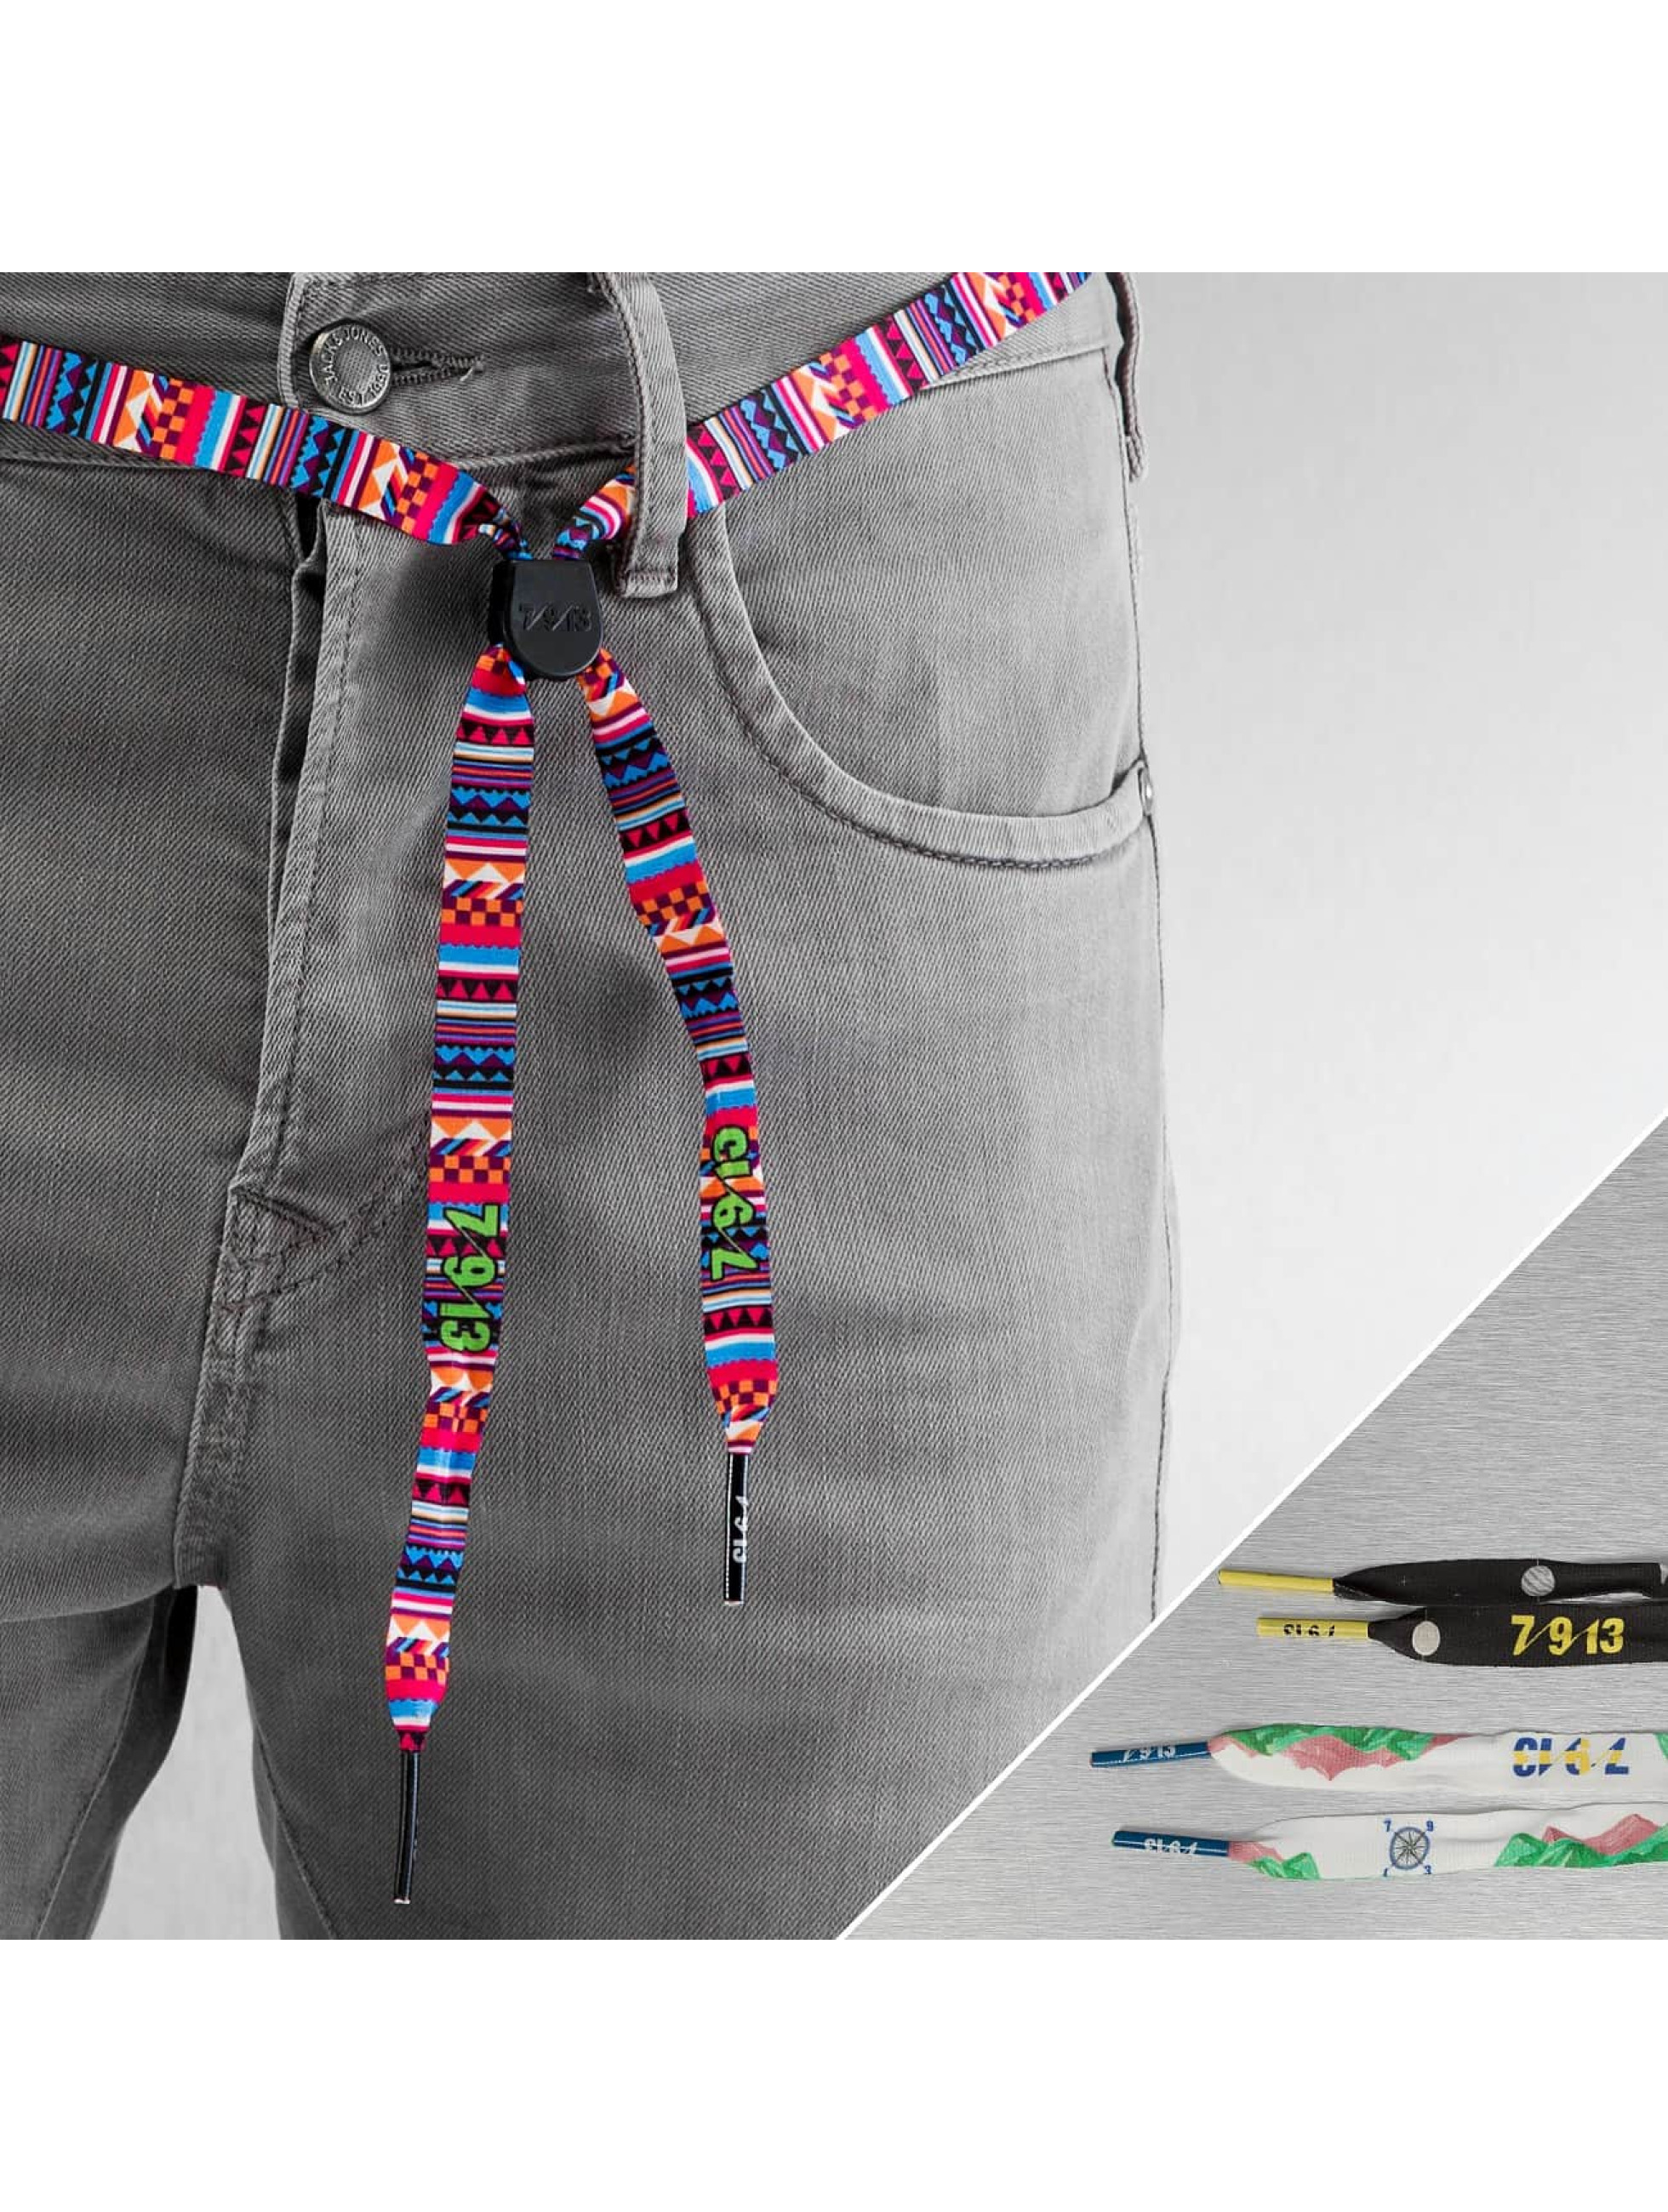 Seven Nine 13 Ceinture Albert Nyberg 3er Pack multicolore